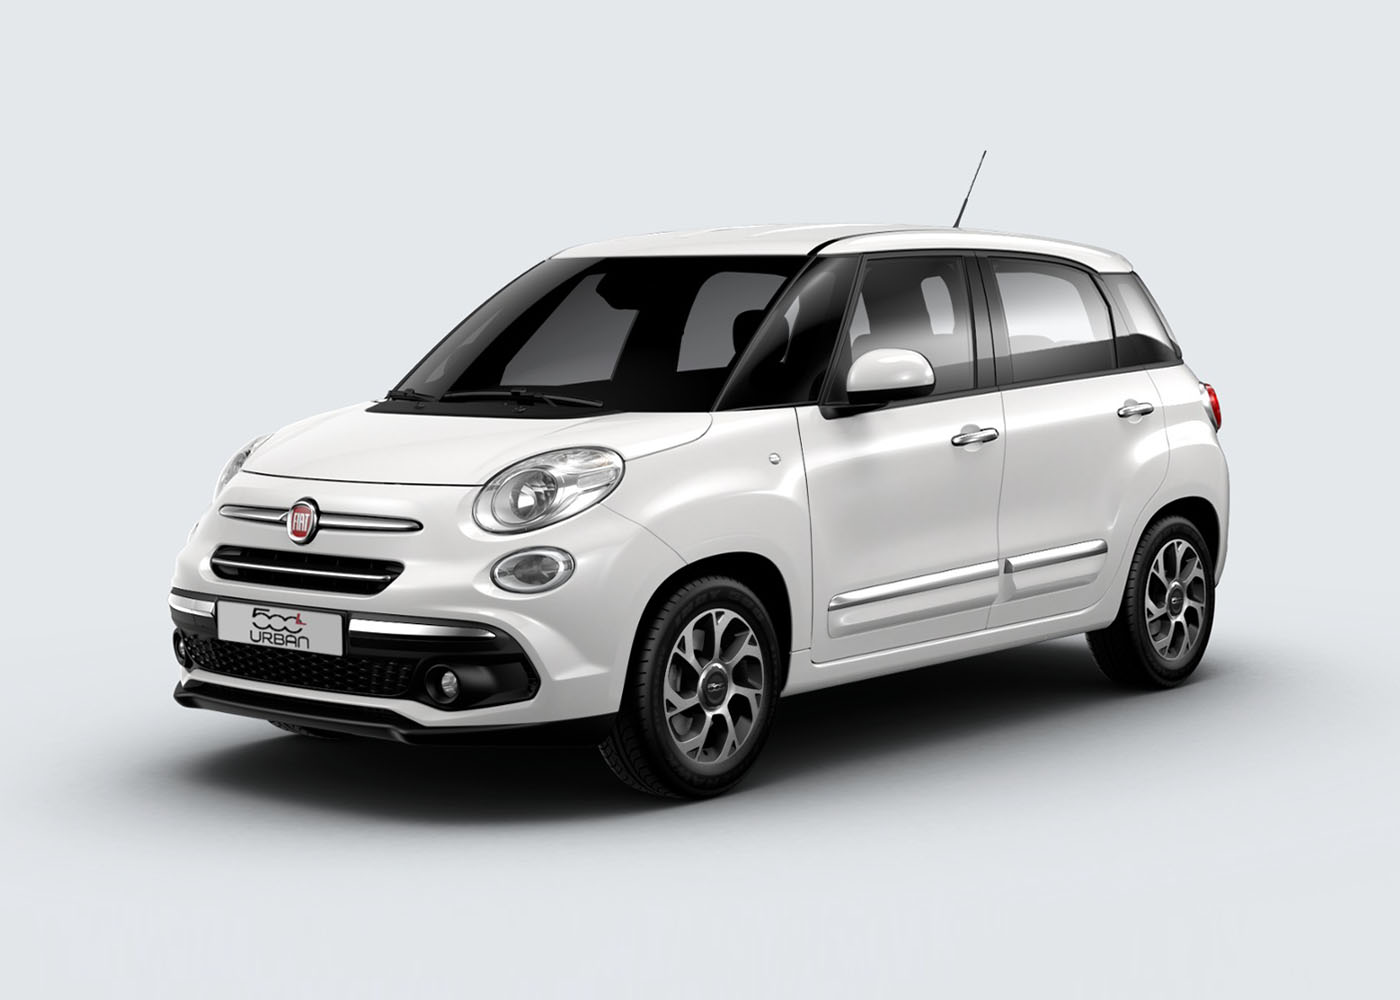 fiat 500l 1 4 t jet 120 cv gpl pop star bianco gelato km0 a soli 17360 su miacar 7koye. Black Bedroom Furniture Sets. Home Design Ideas